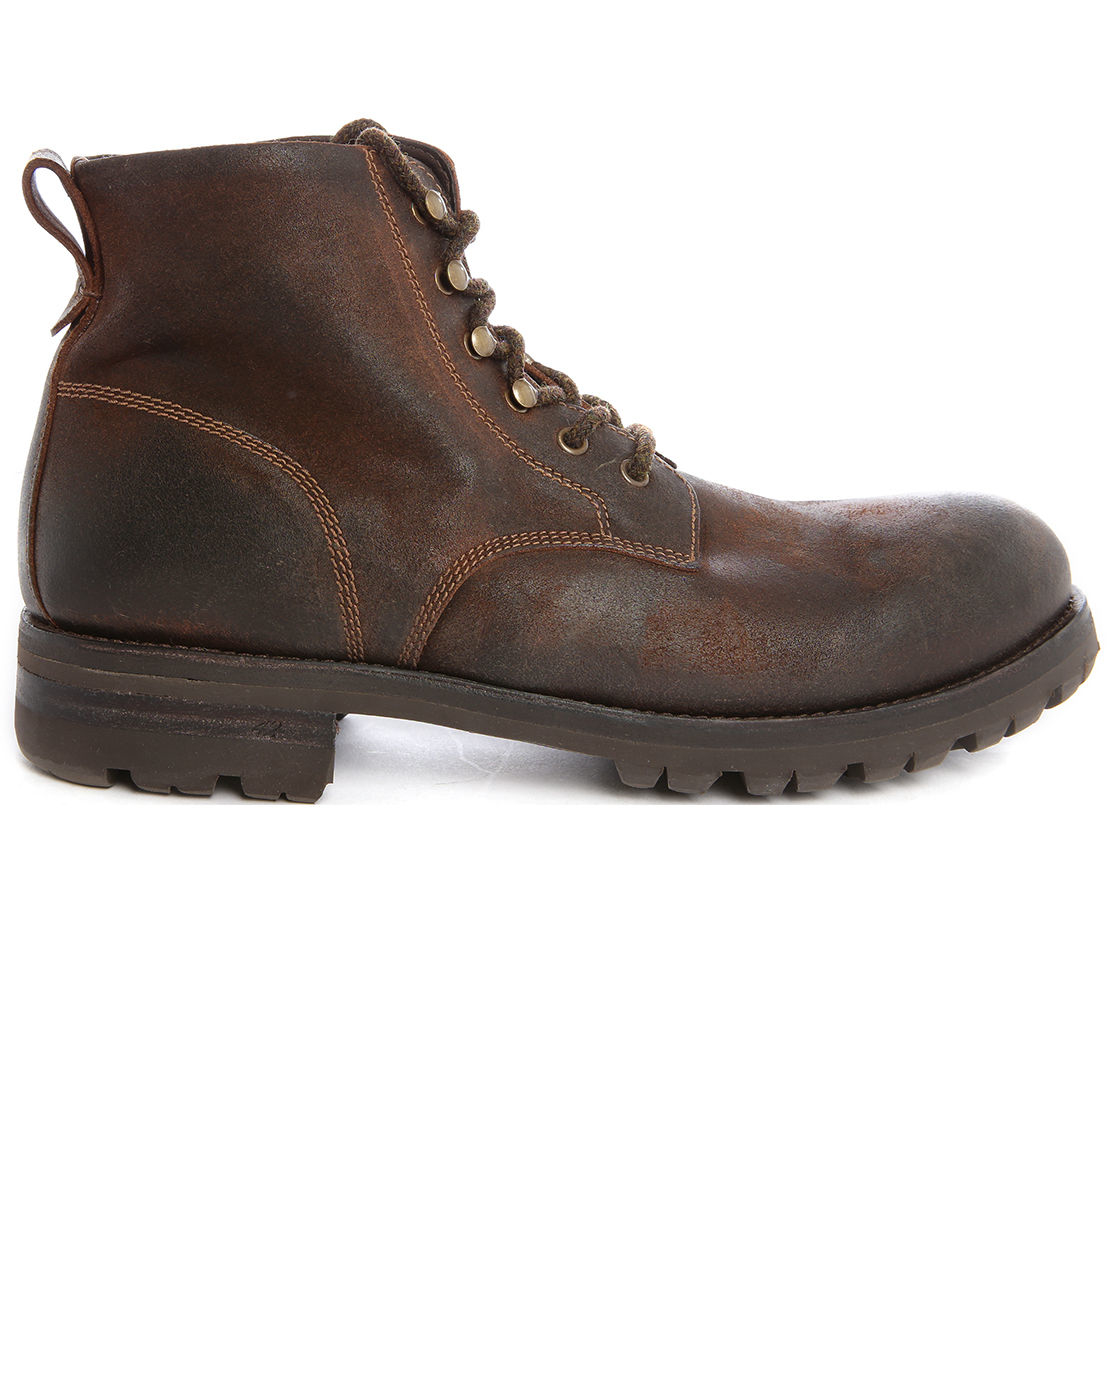 ndc steeve rangers beige brown suede boots in brown for